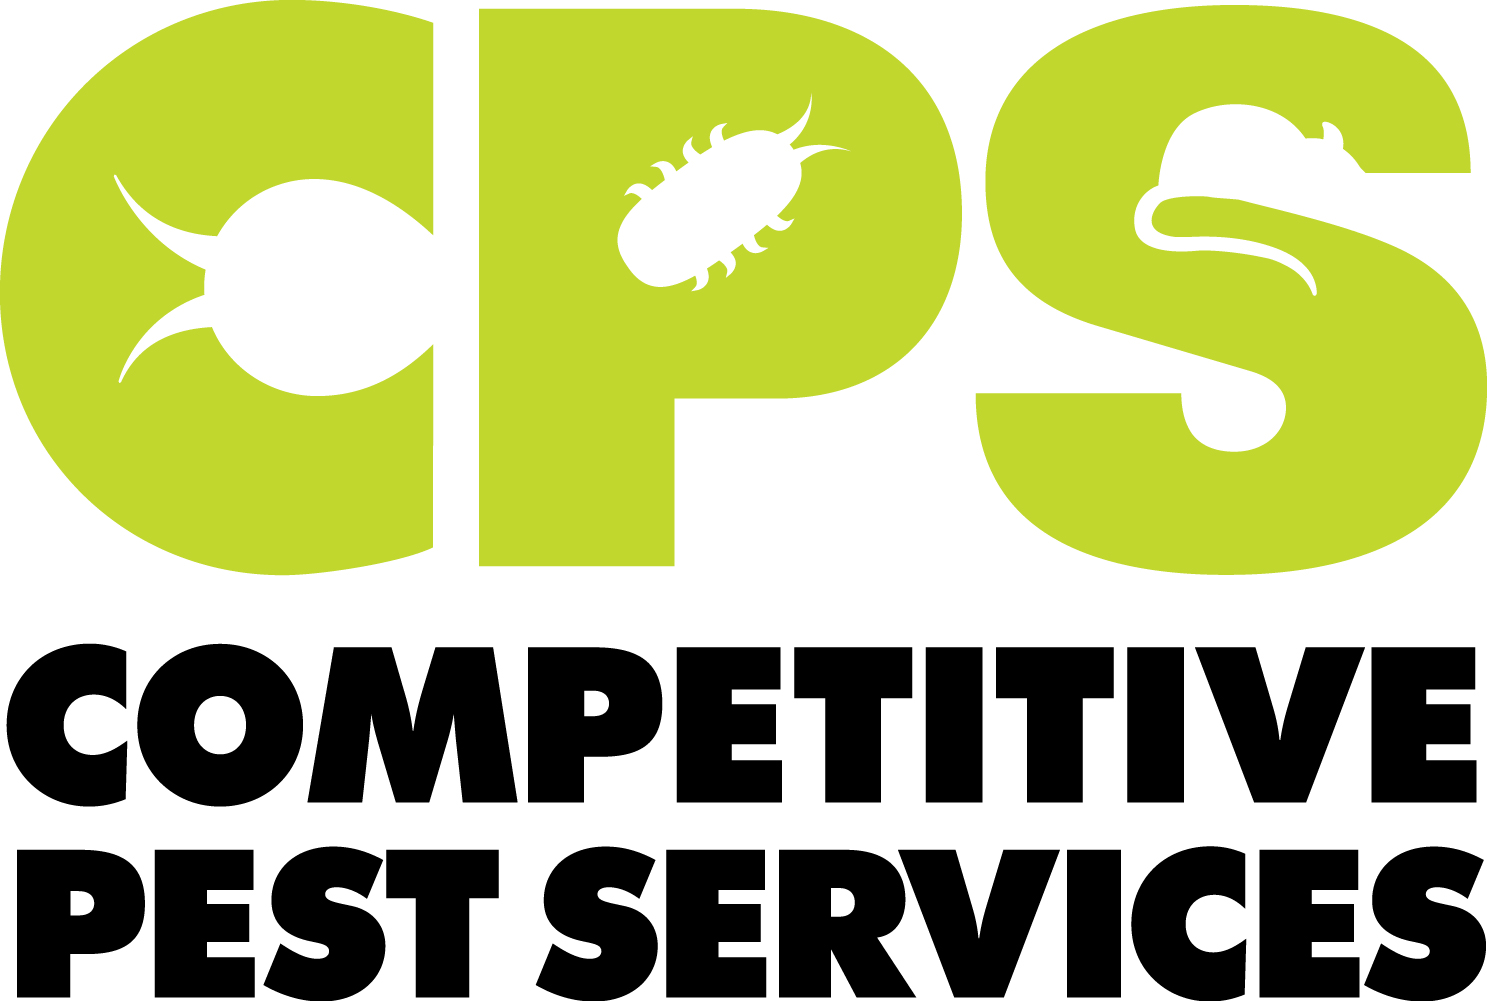 New Name: Competitive Pest Services